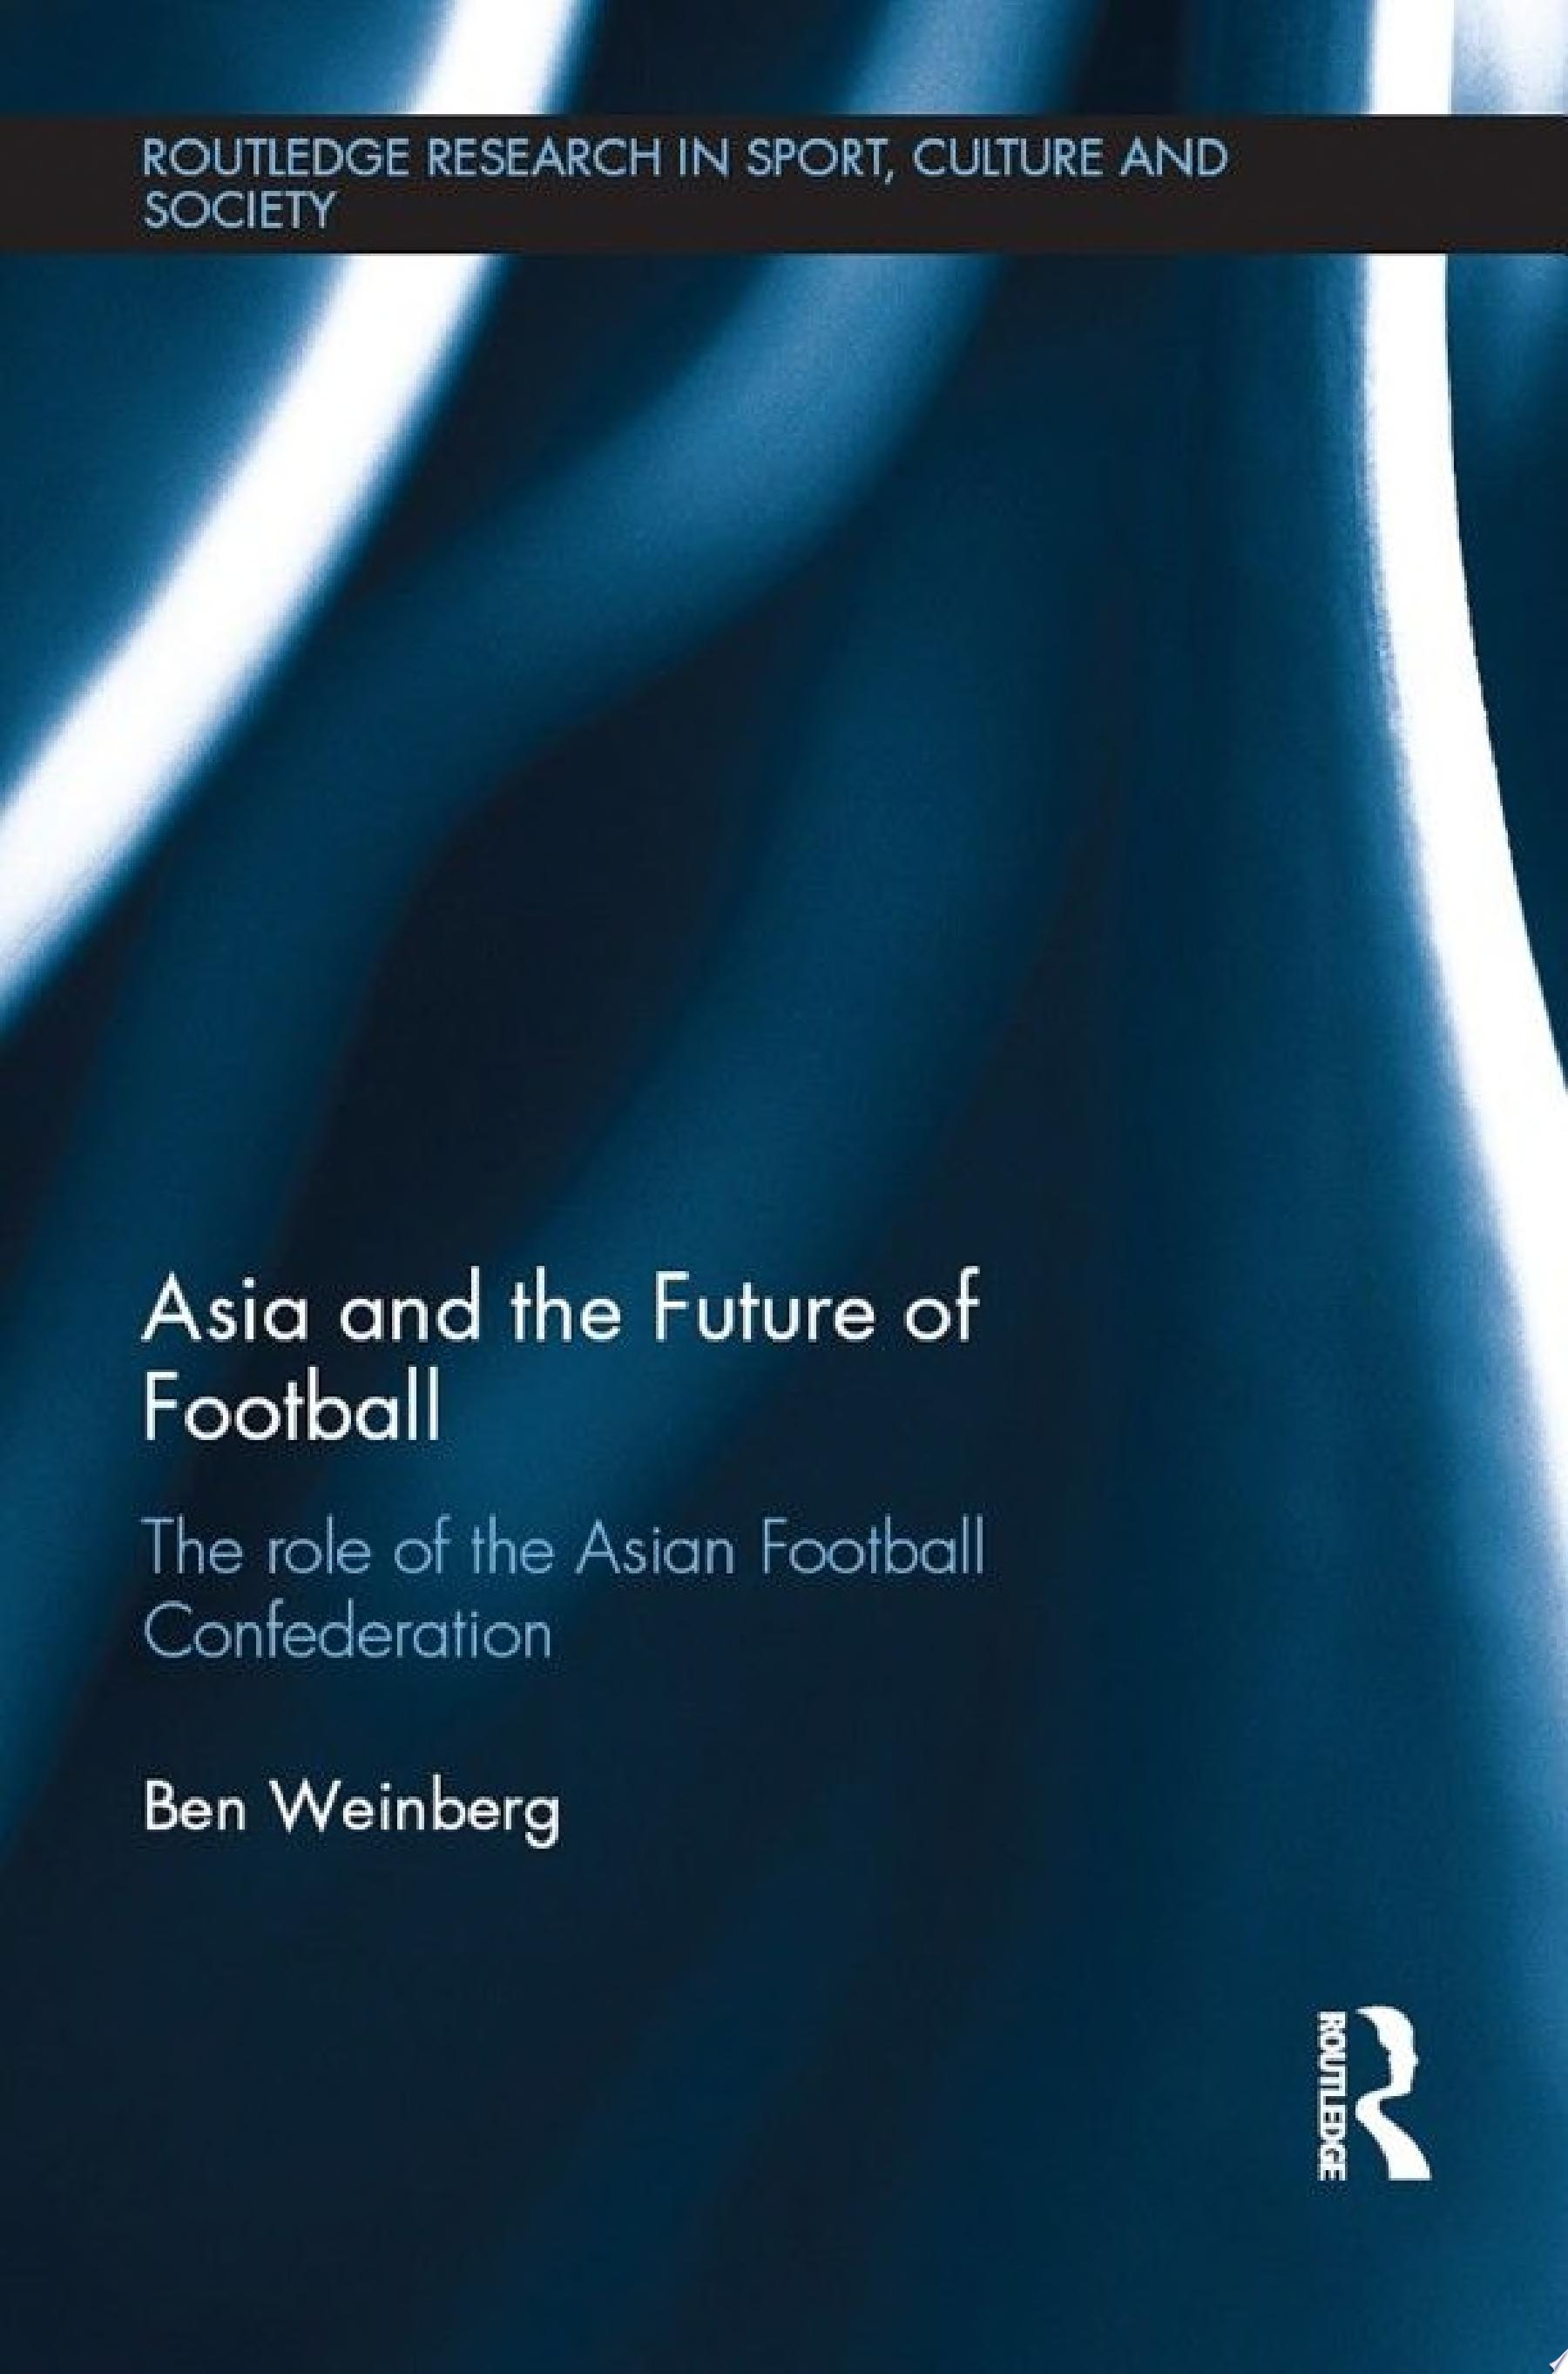 Asia and the Future of Football